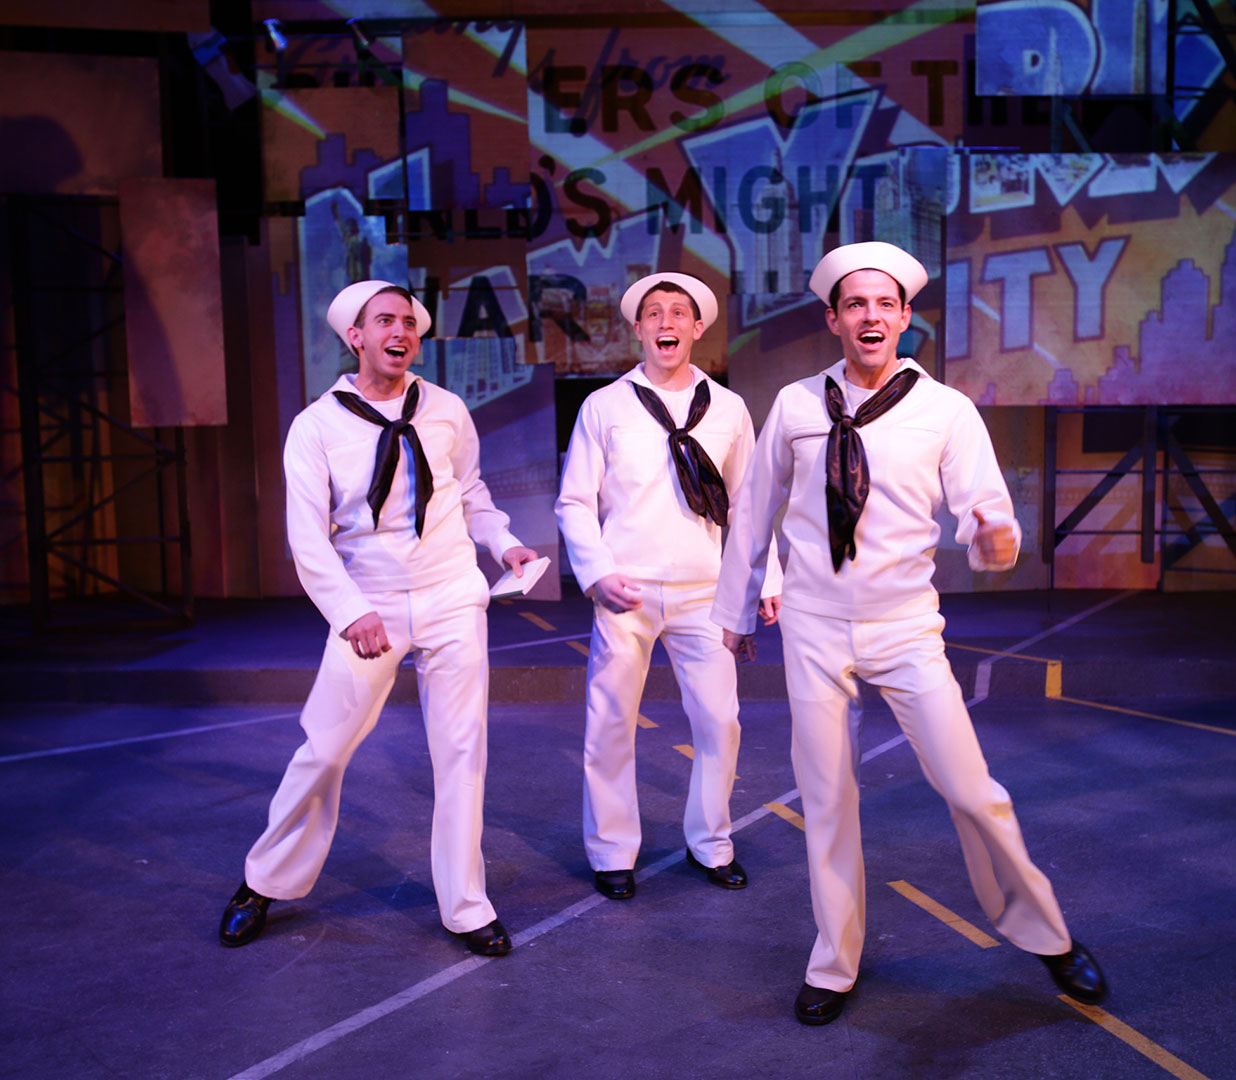 Phil-Zach-John-3-sailors1